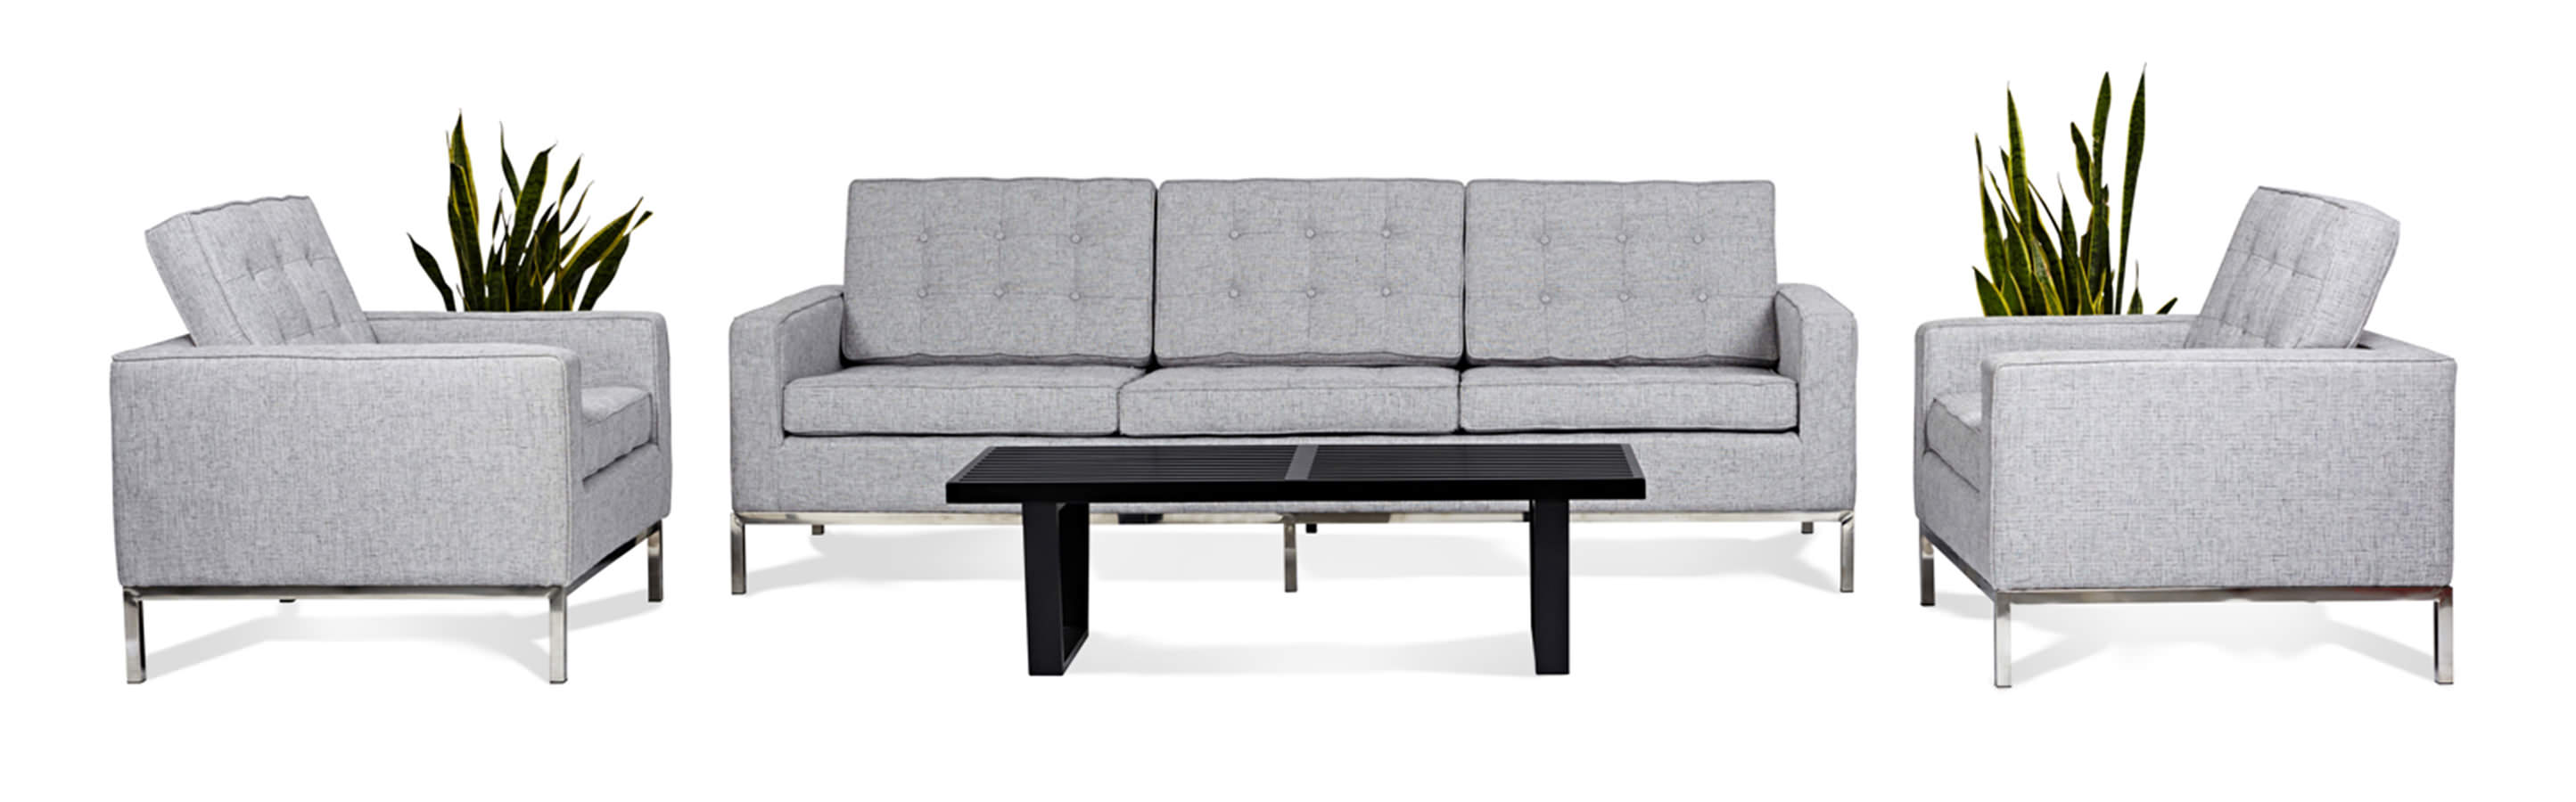 florence knoll sofa review single bed chair leather style living room sets